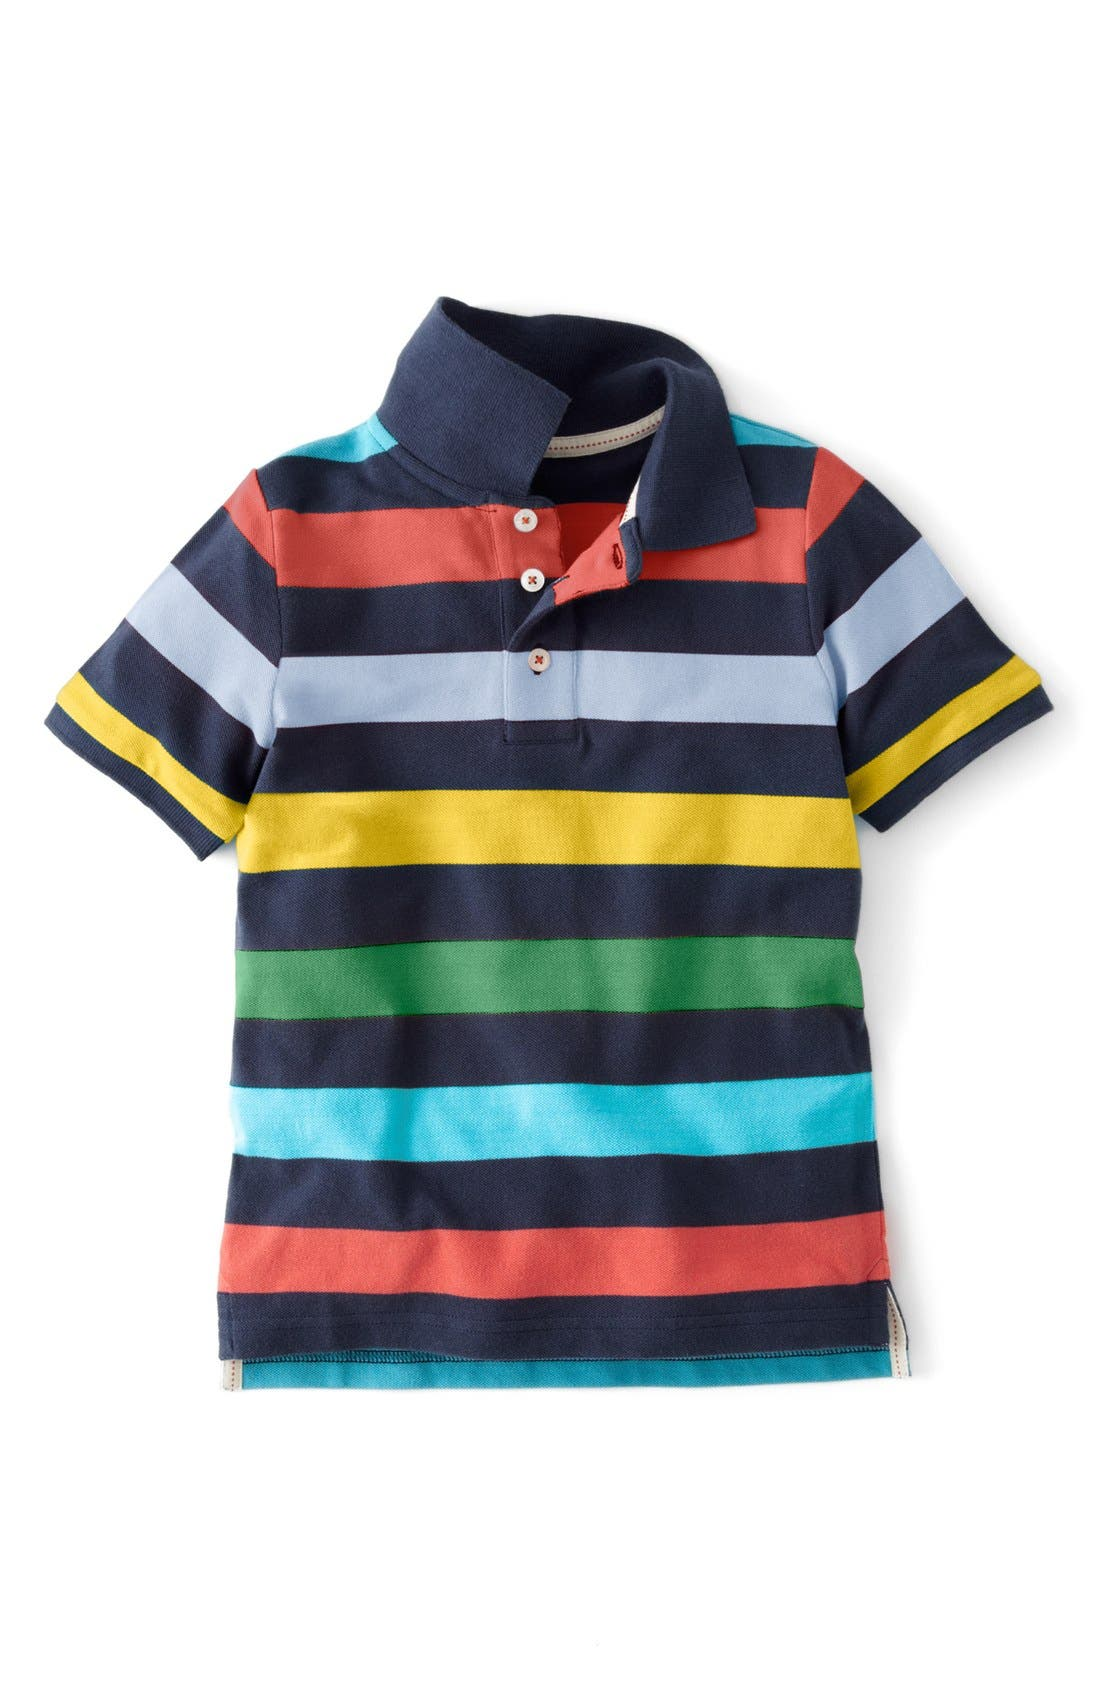 Main Image - Mini Boden Pique Polo (Toddler Boys, Little Boys & Big Boys)